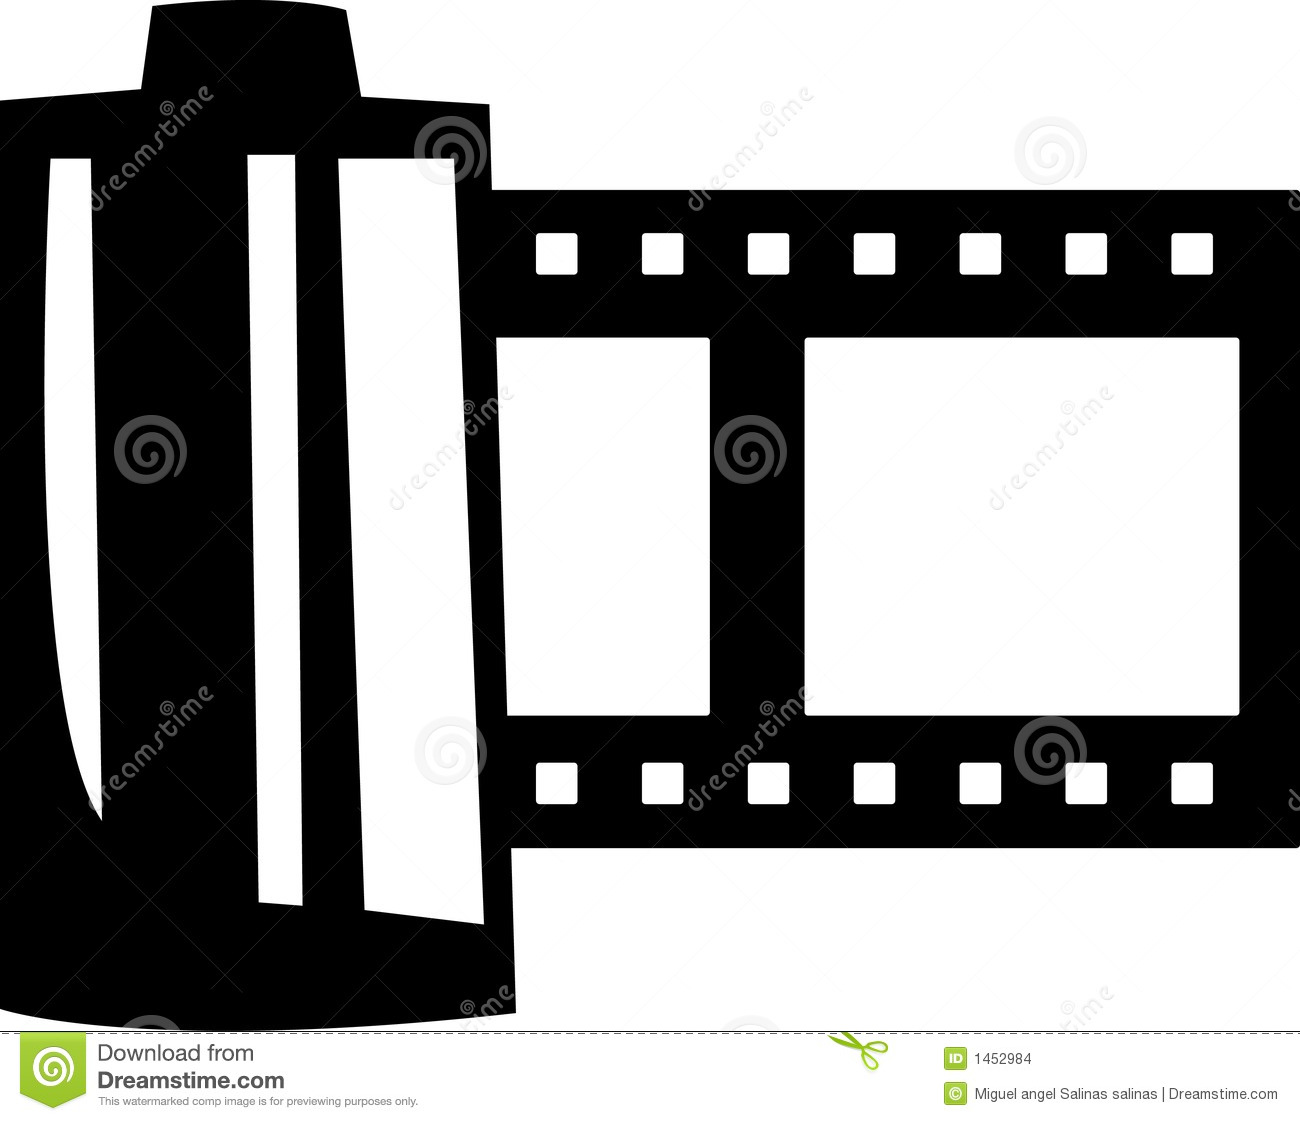 Film Roll Vector Illustration Stock Vector - Image: 1452984